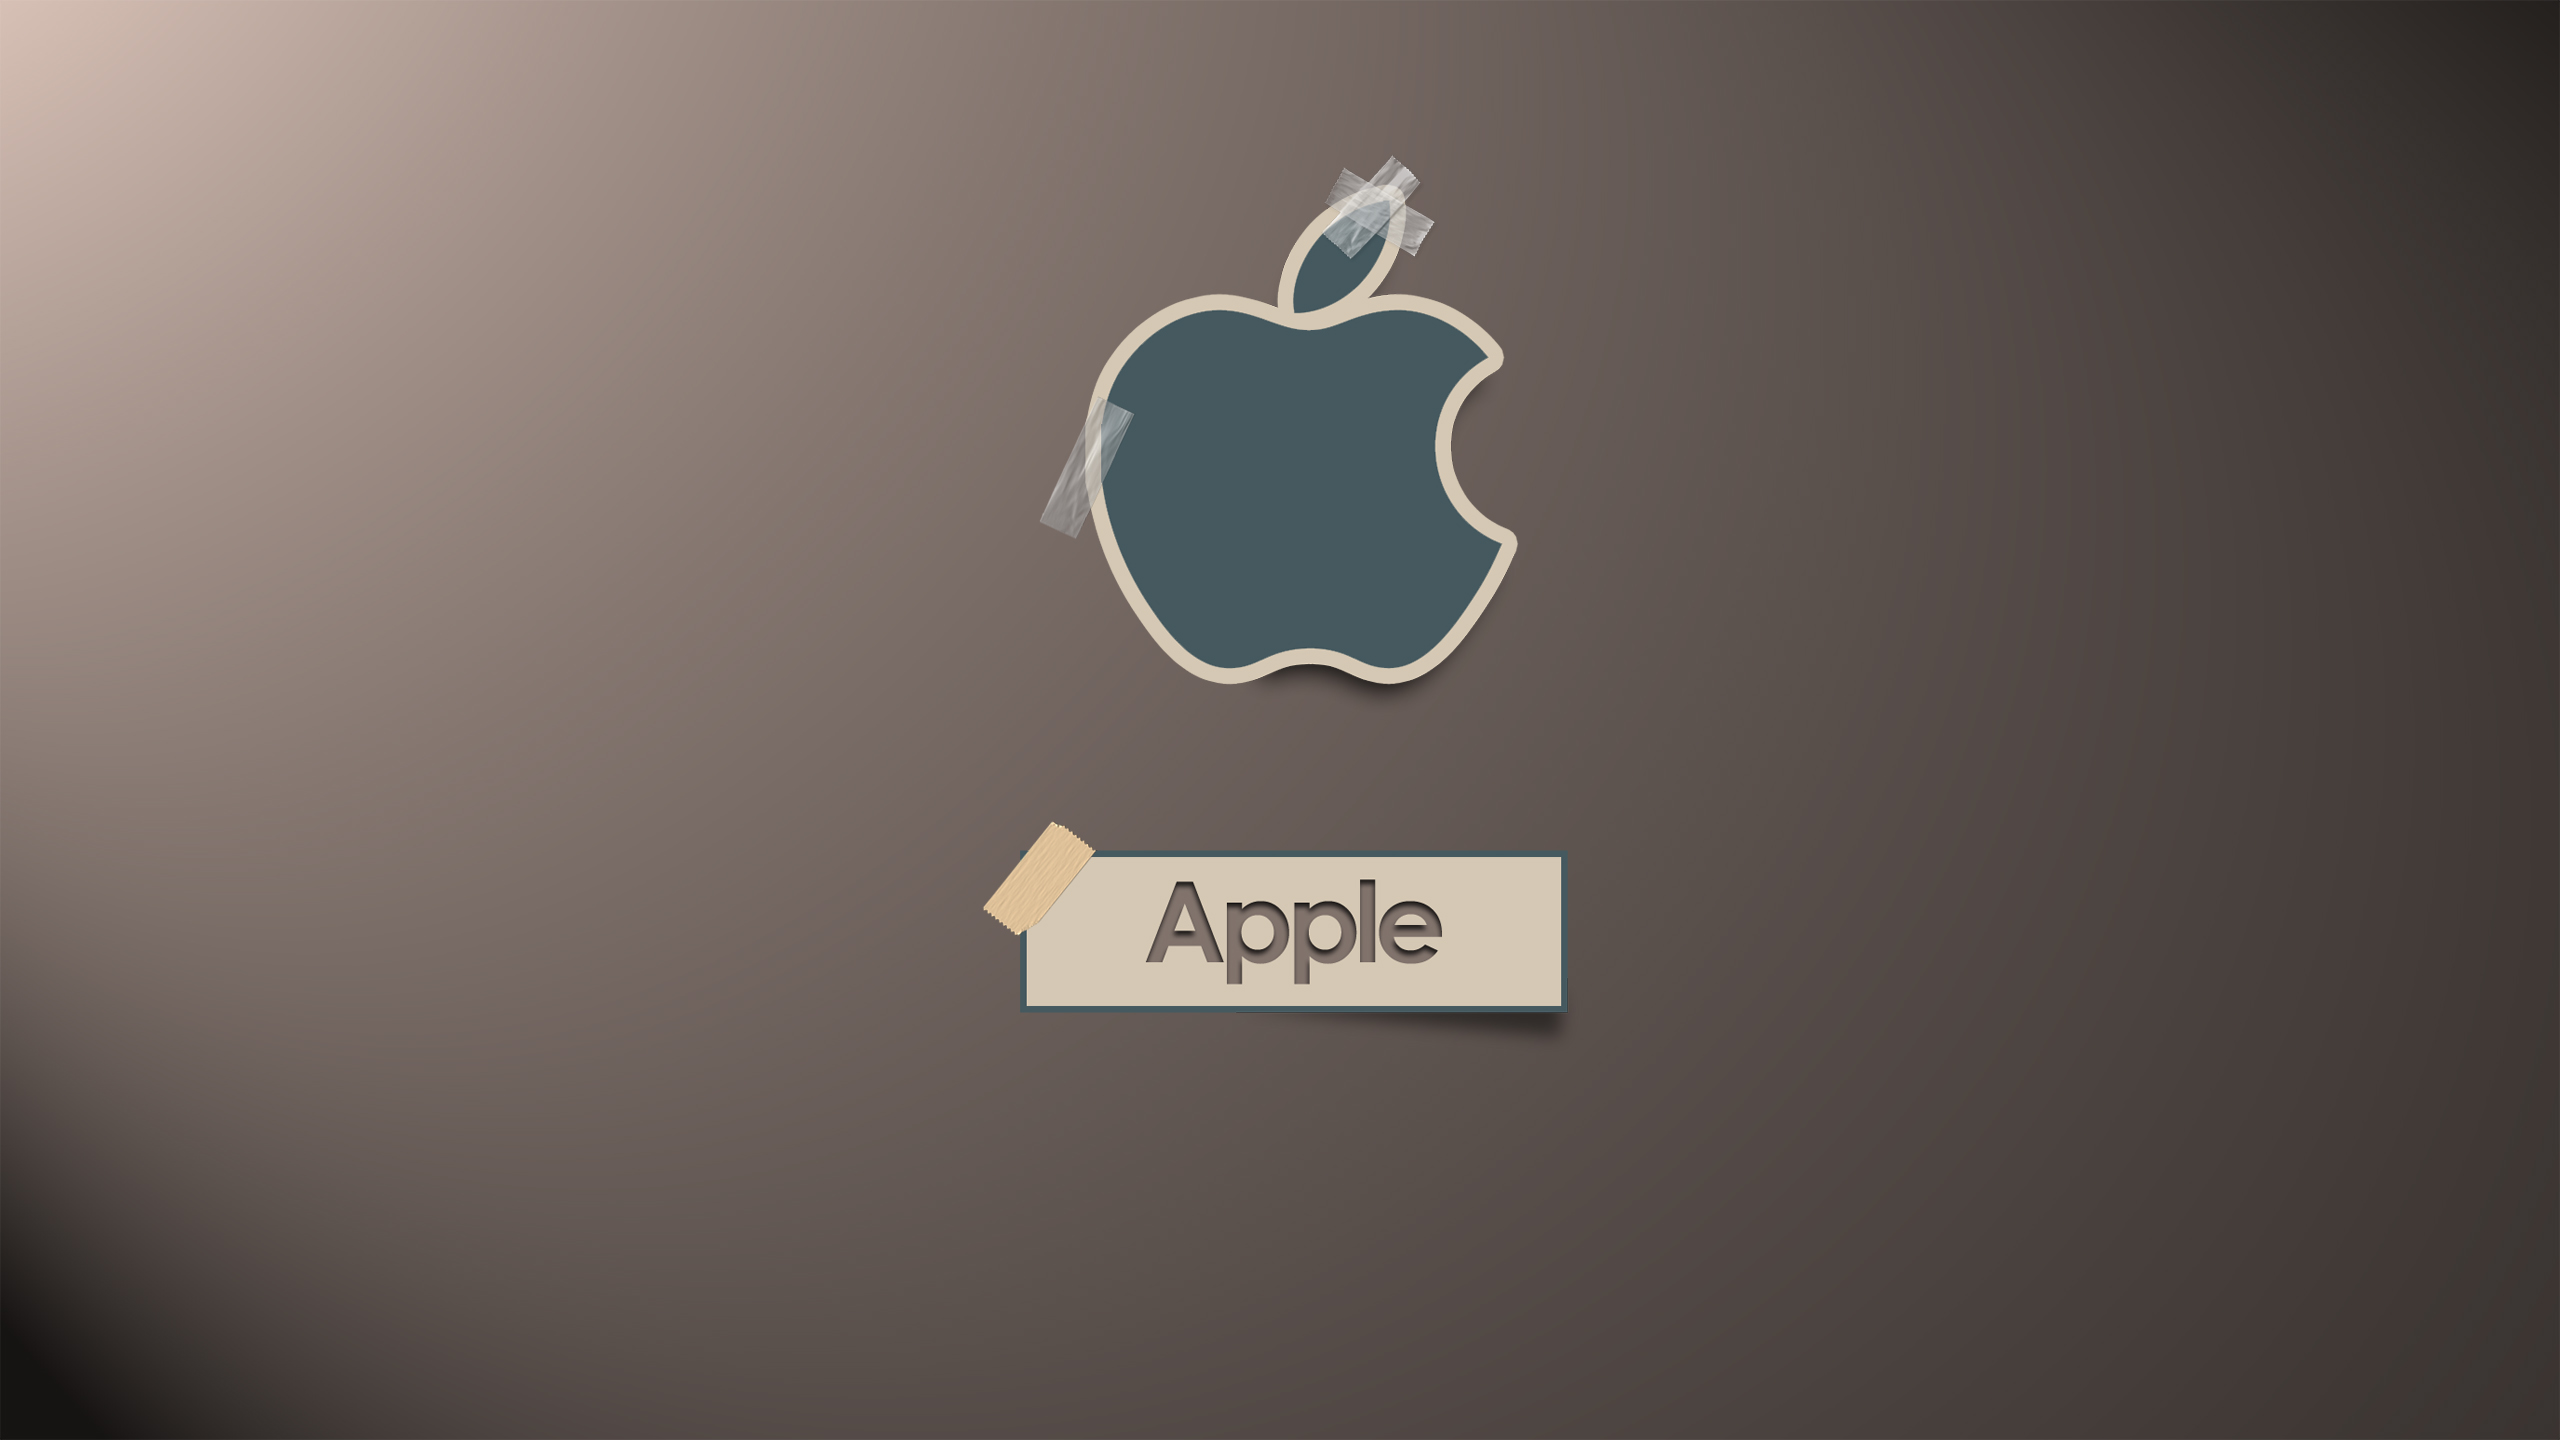 apple iphone 5s logo hd wallpaper | hd latest wallpapers